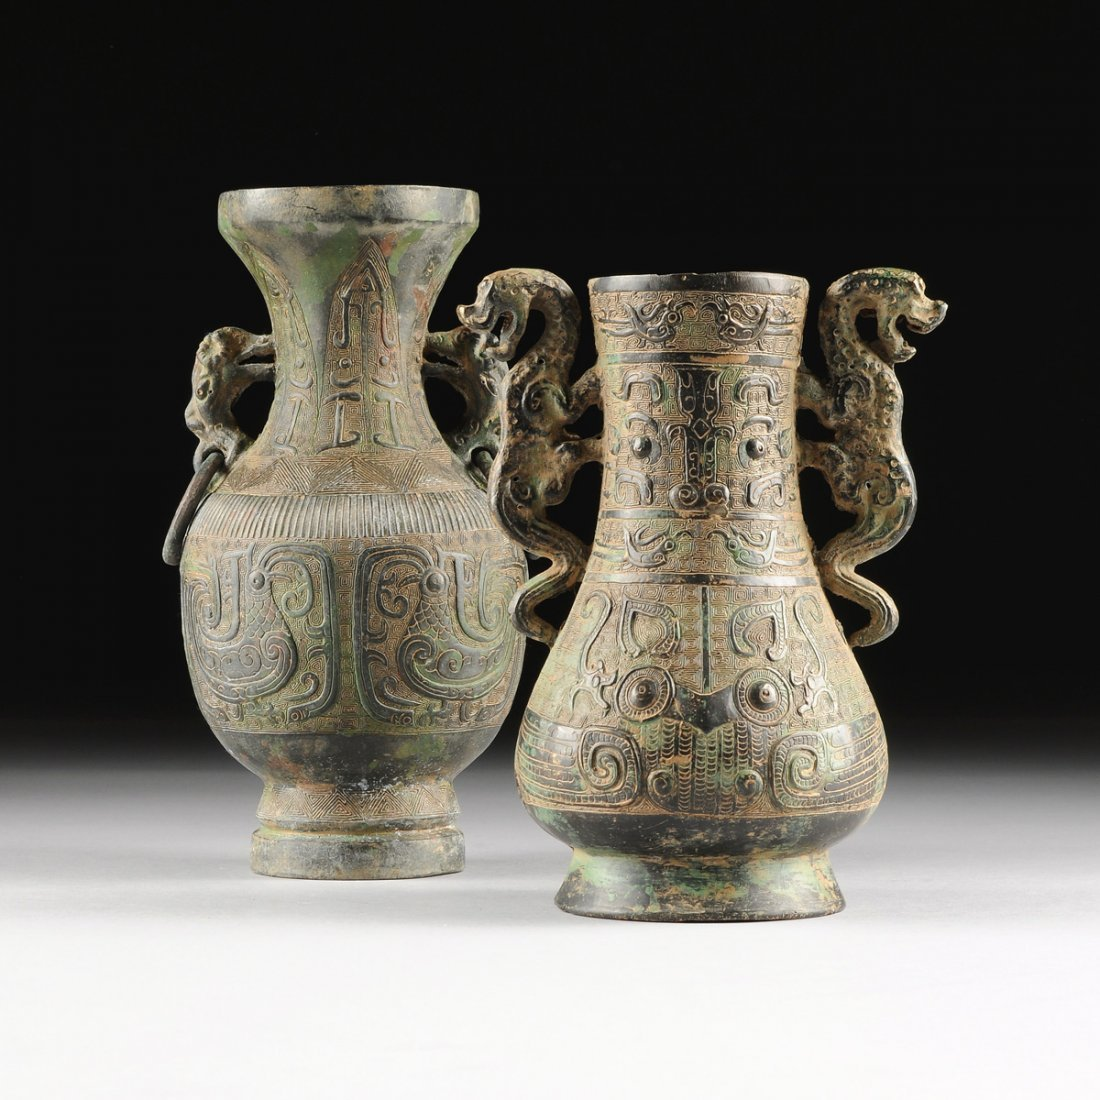 TWO CHINESE ARCHAISTIC STYLE BRONZE VASES,